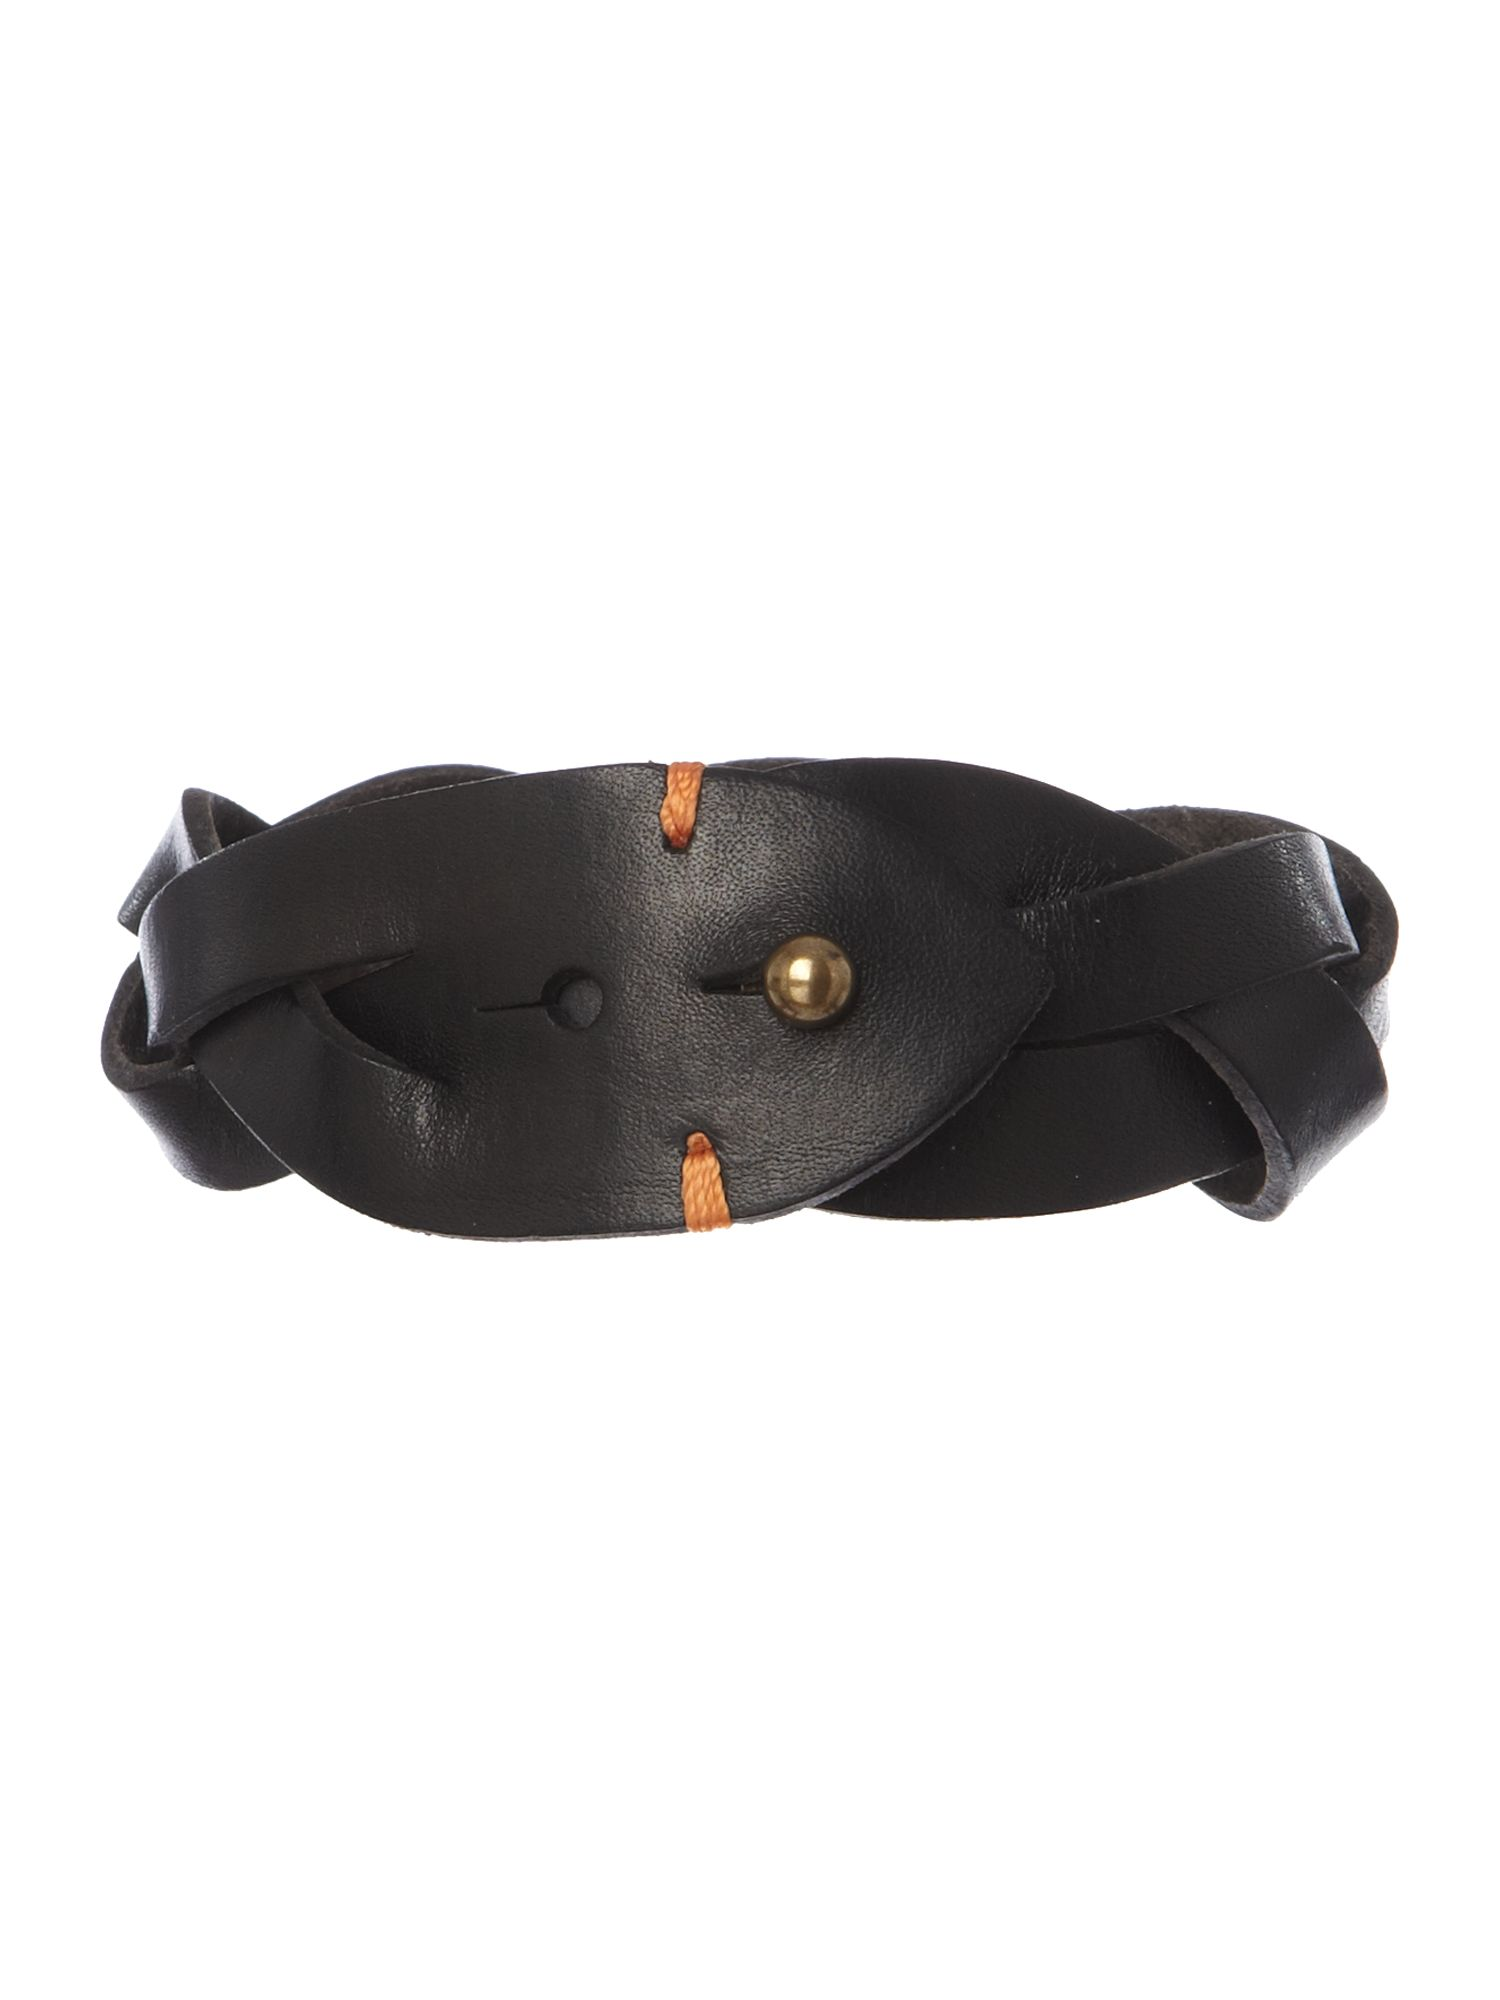 Hook leather cuff bracelet